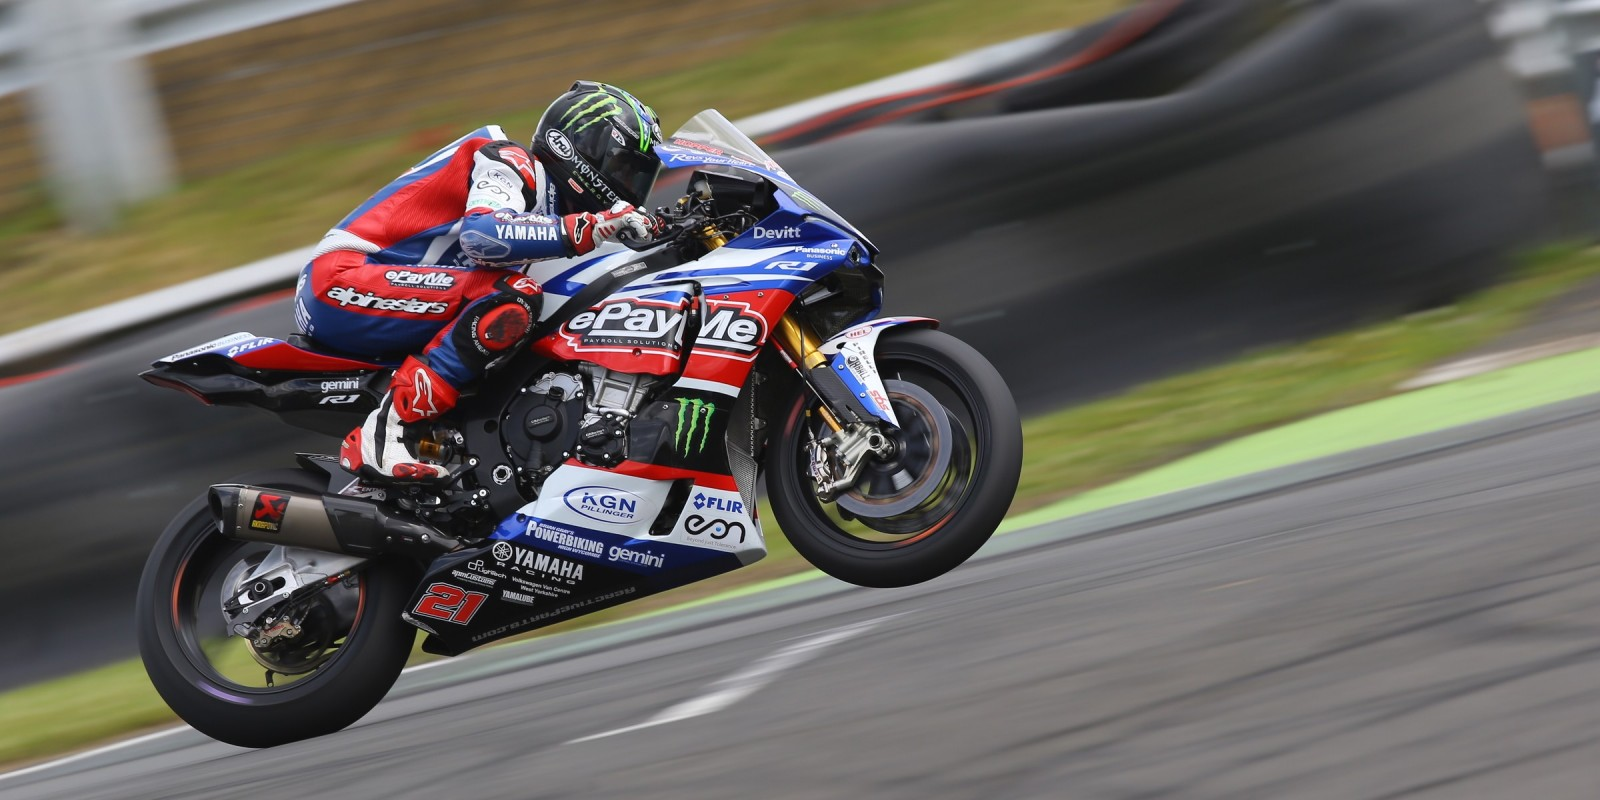 Monster athletes compete in the 2016 British Superbike in Knockhill, Day One